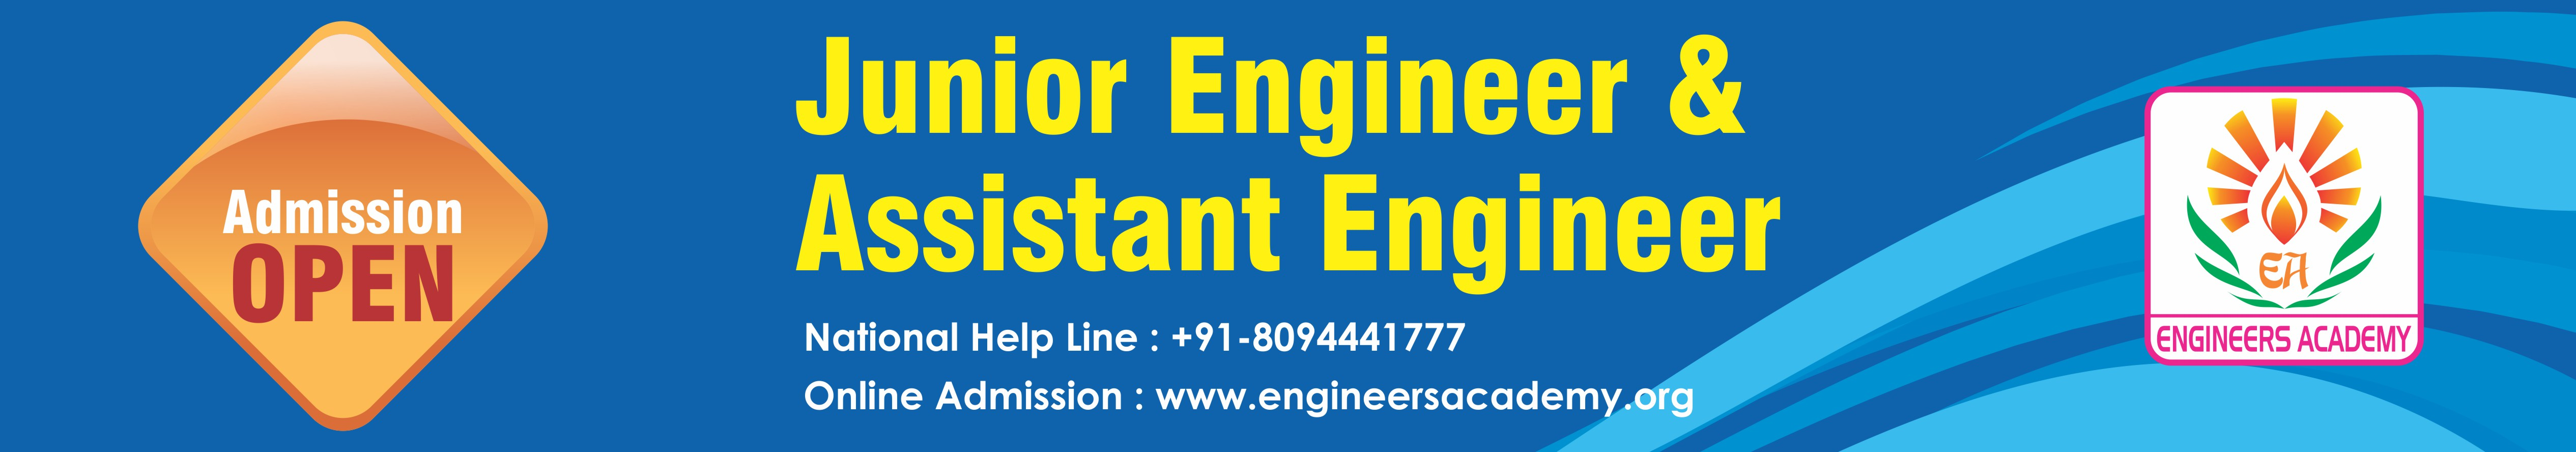 GATE, SSC JE, RRB JE, SSC JE Previous Year Solved Papers